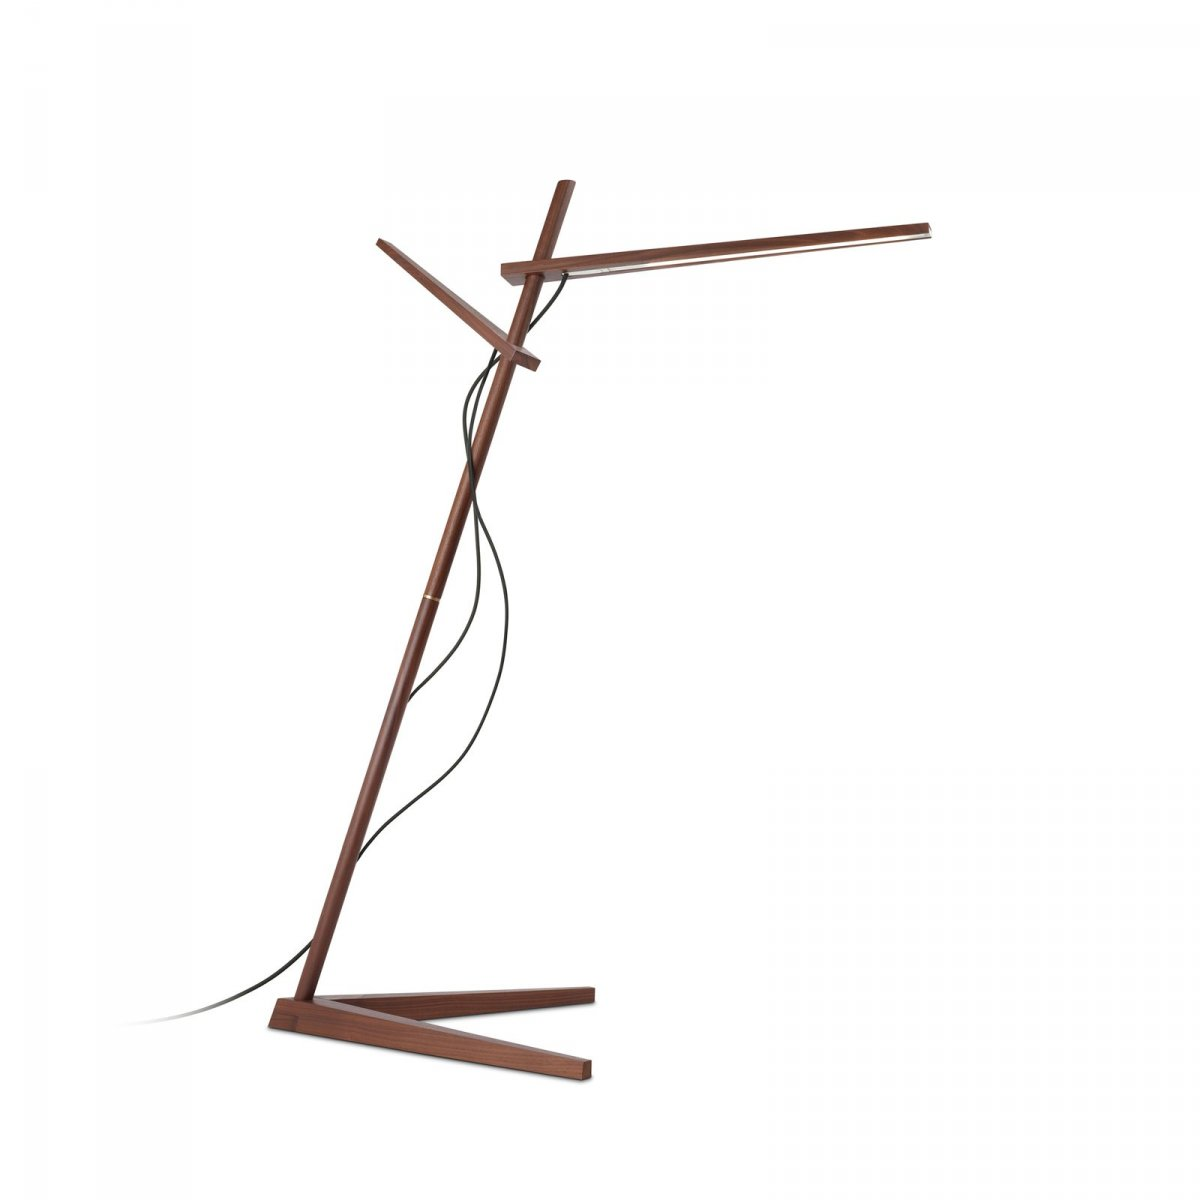 Clamp Floor Lamp, walnut.